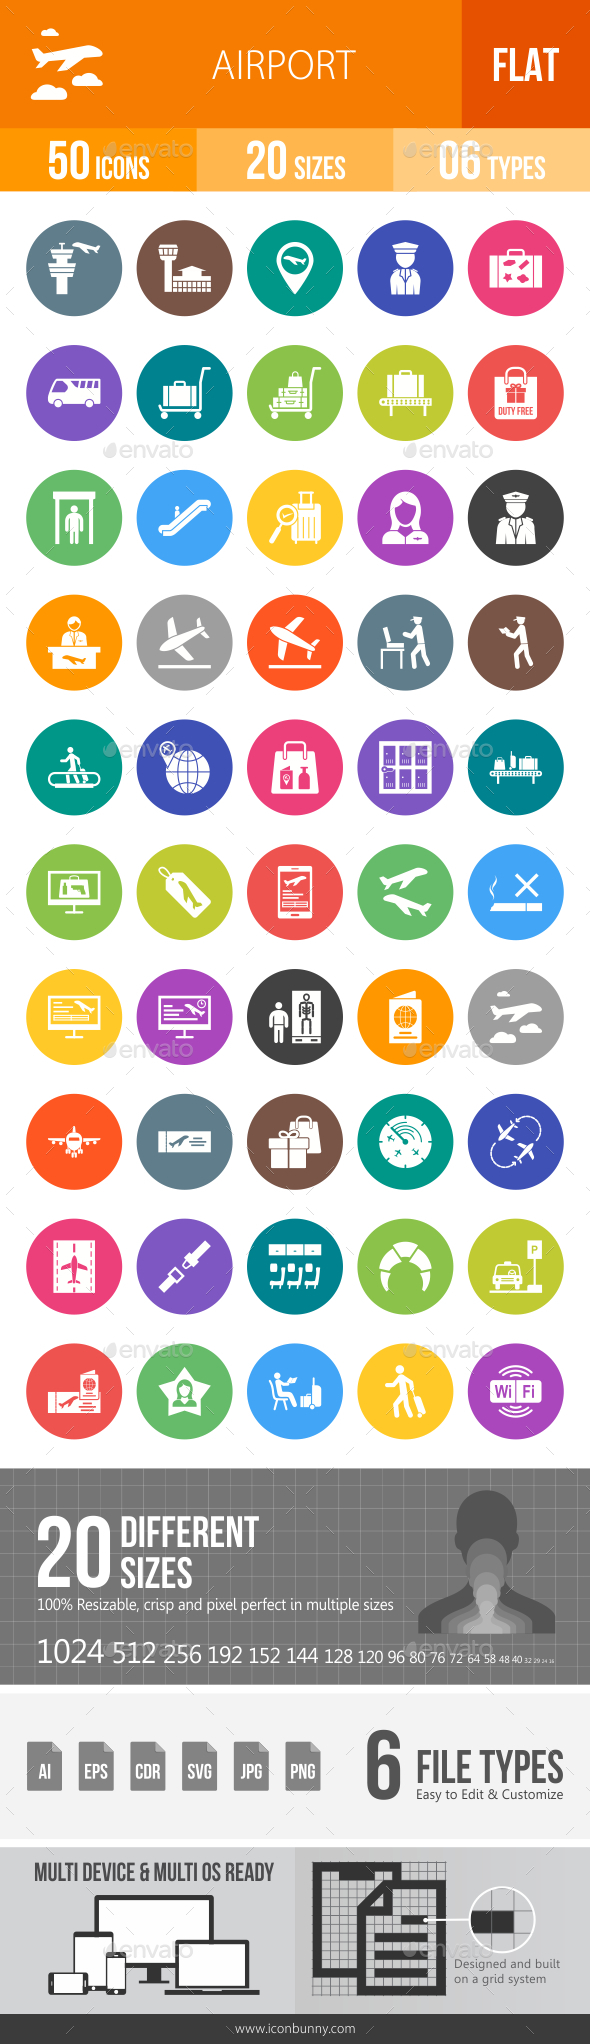 Airport Flat Round Icons - Icons